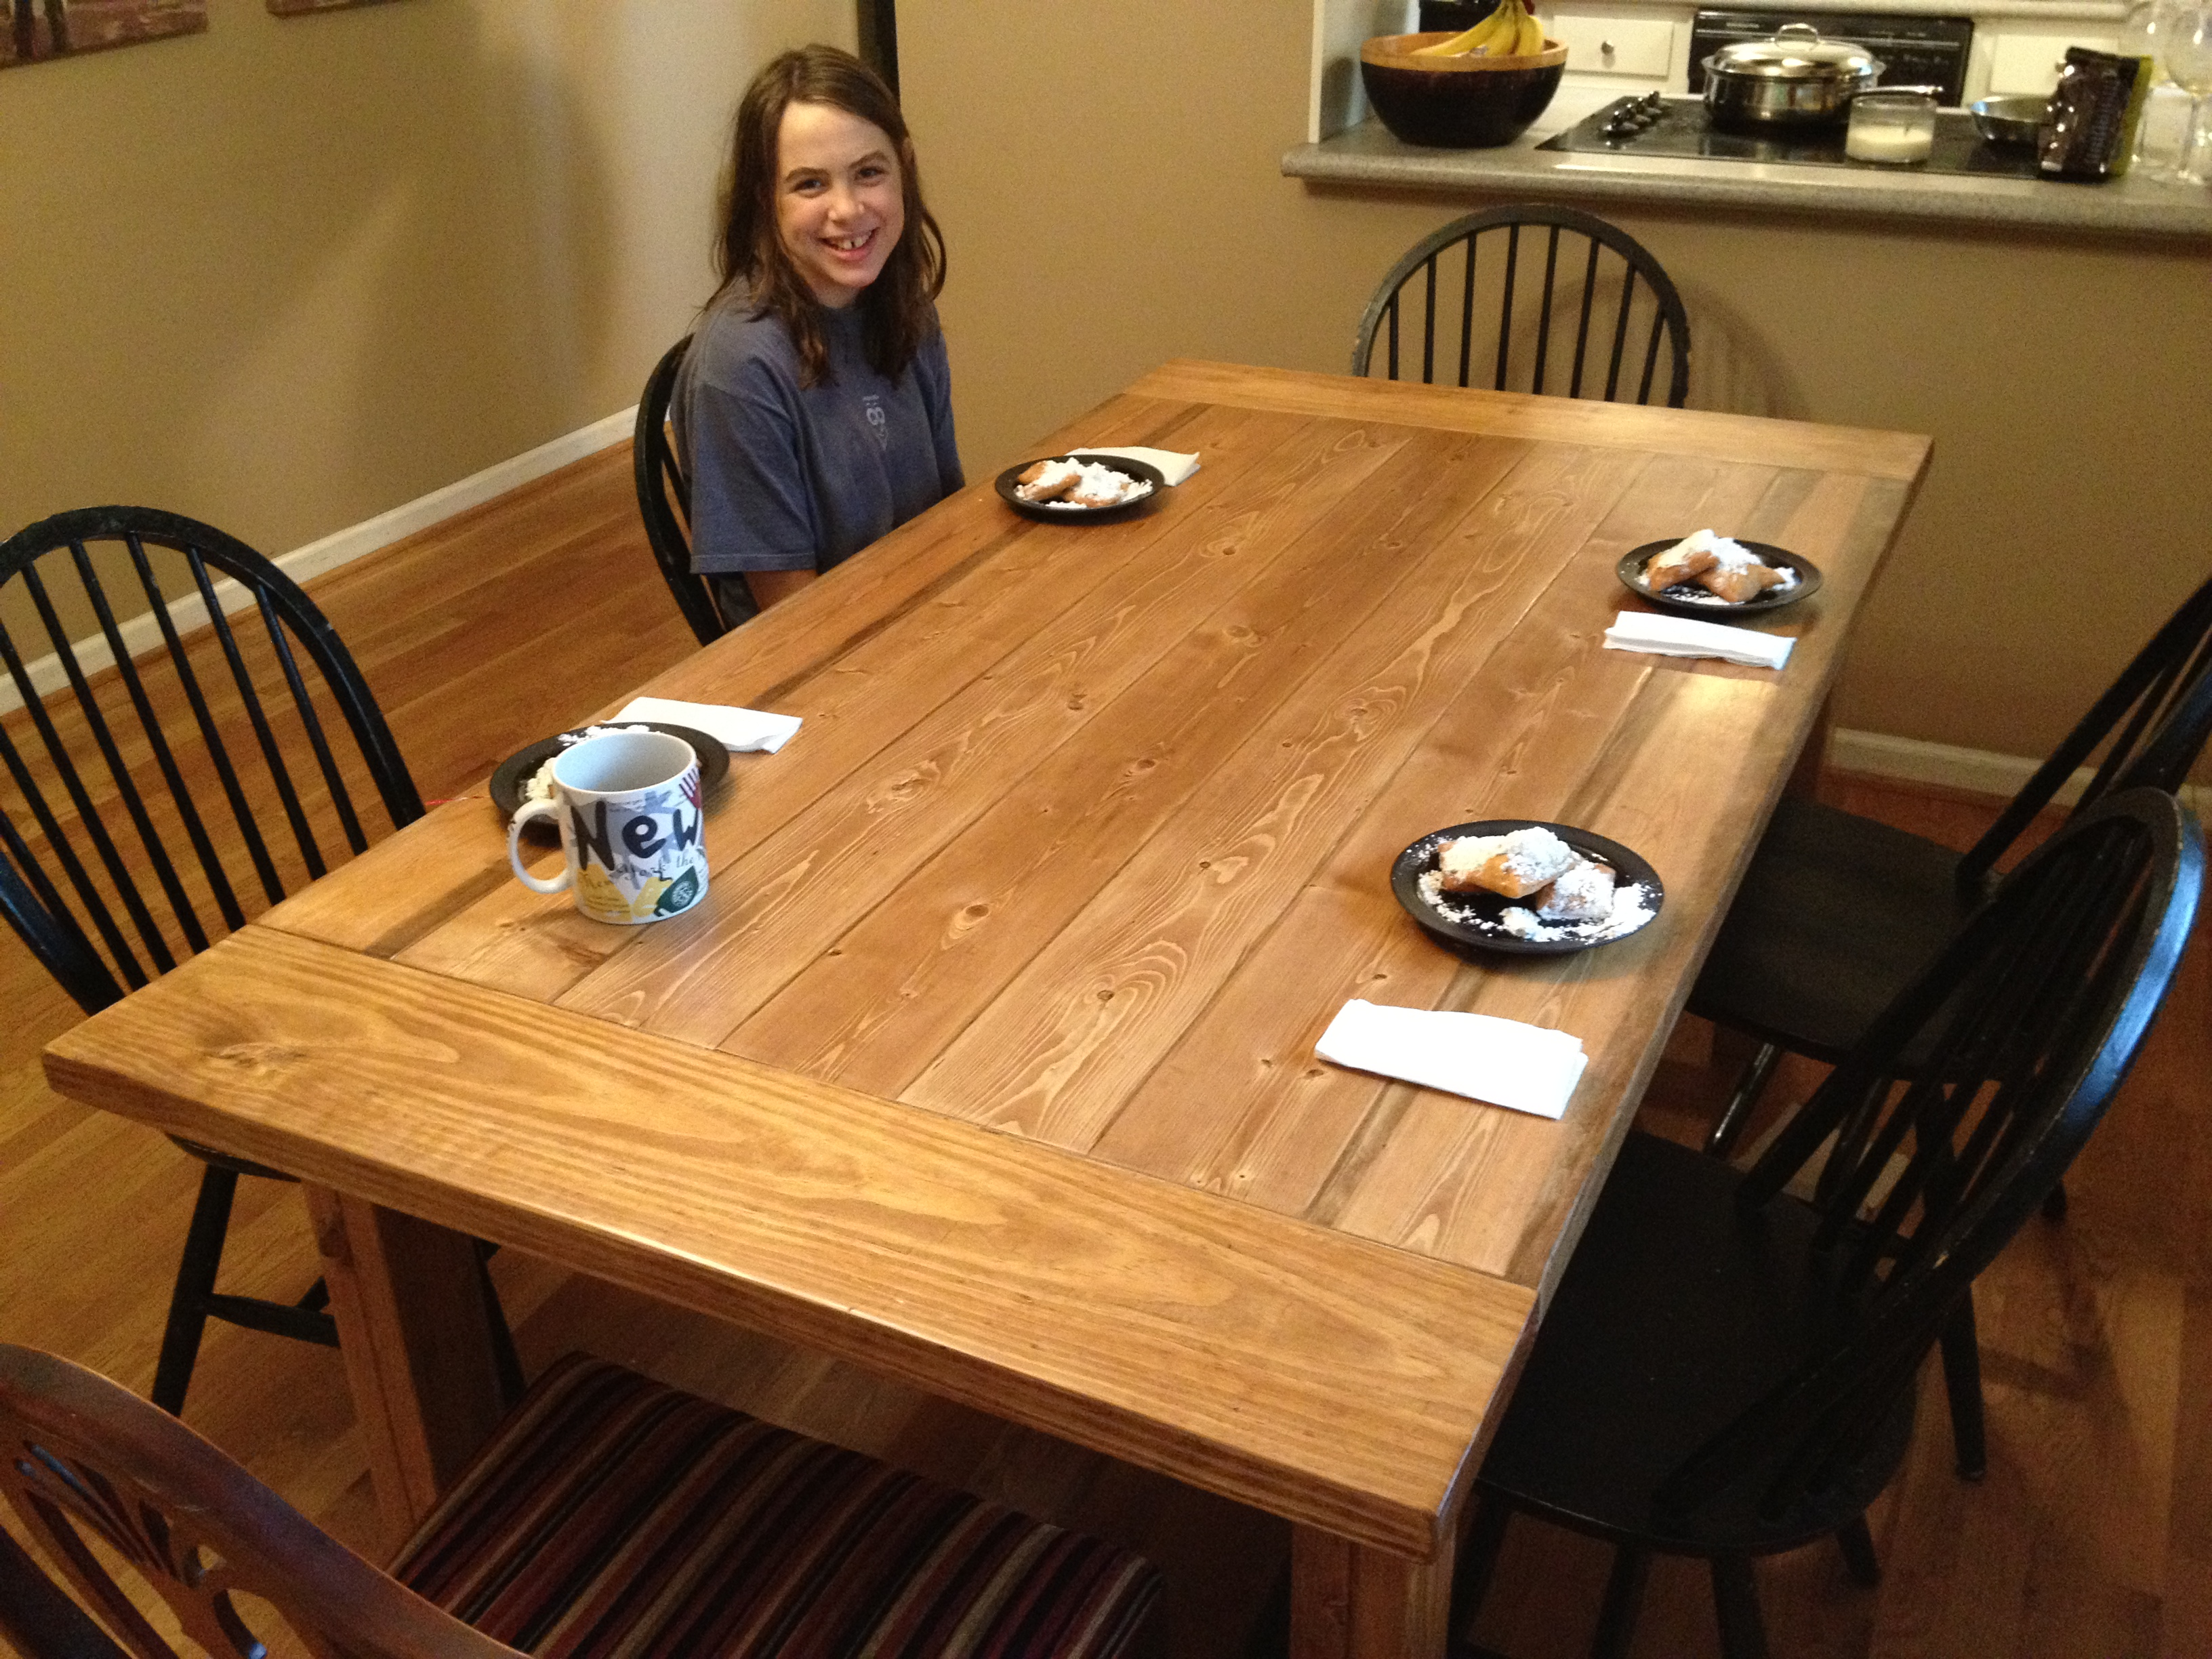 Free Plans for Making a Rustic Farmhouse Table A Lesson  : IMG2436 from www.edhart.me size 3264 x 2448 jpeg 1421kB